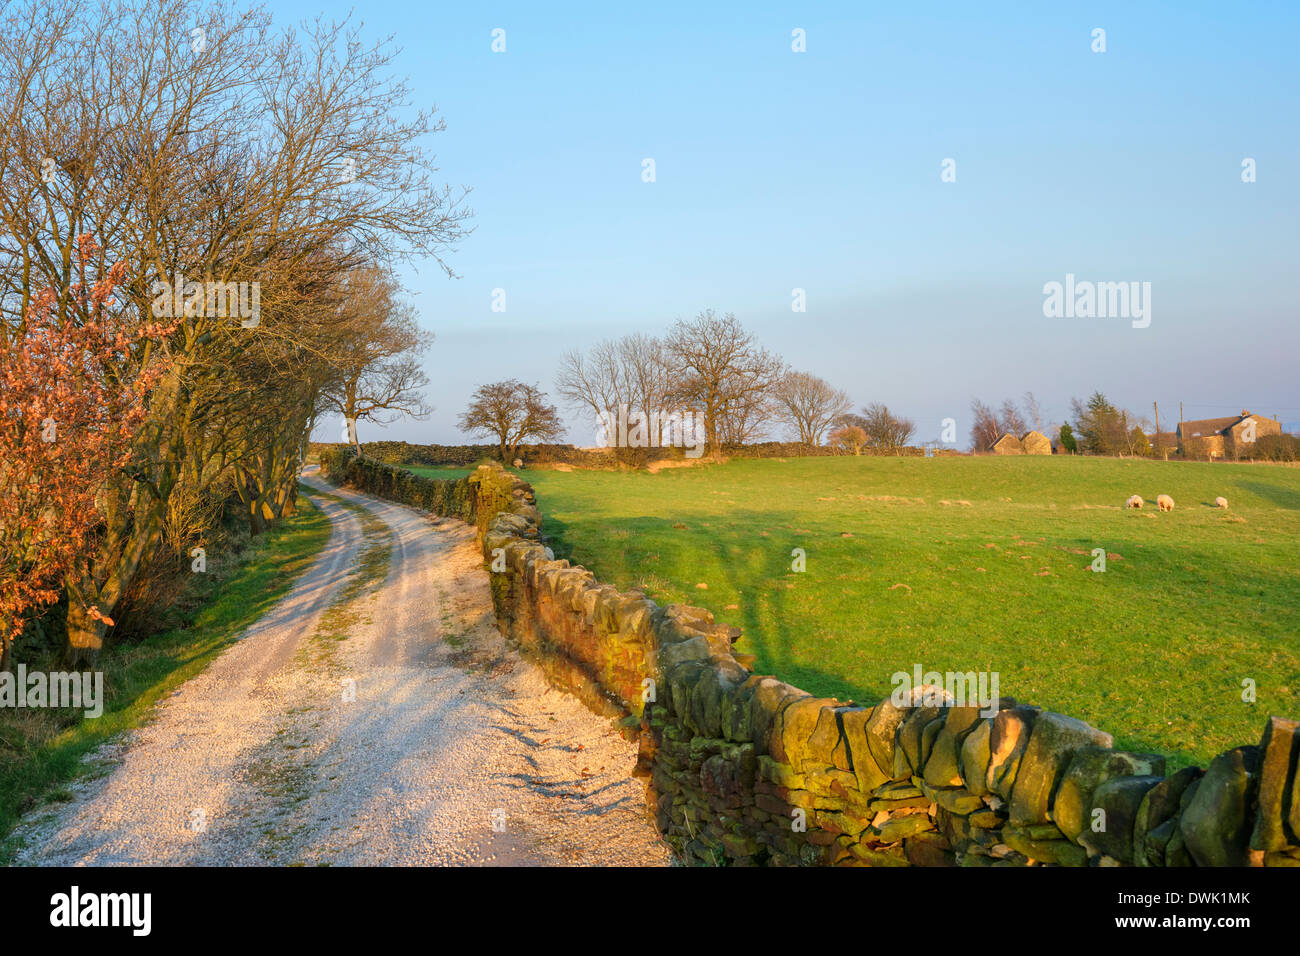 Farm lane near Holmfirth in the late afternoon sun, Holme Valley, West Yorkshire, England, UK Stock Photo